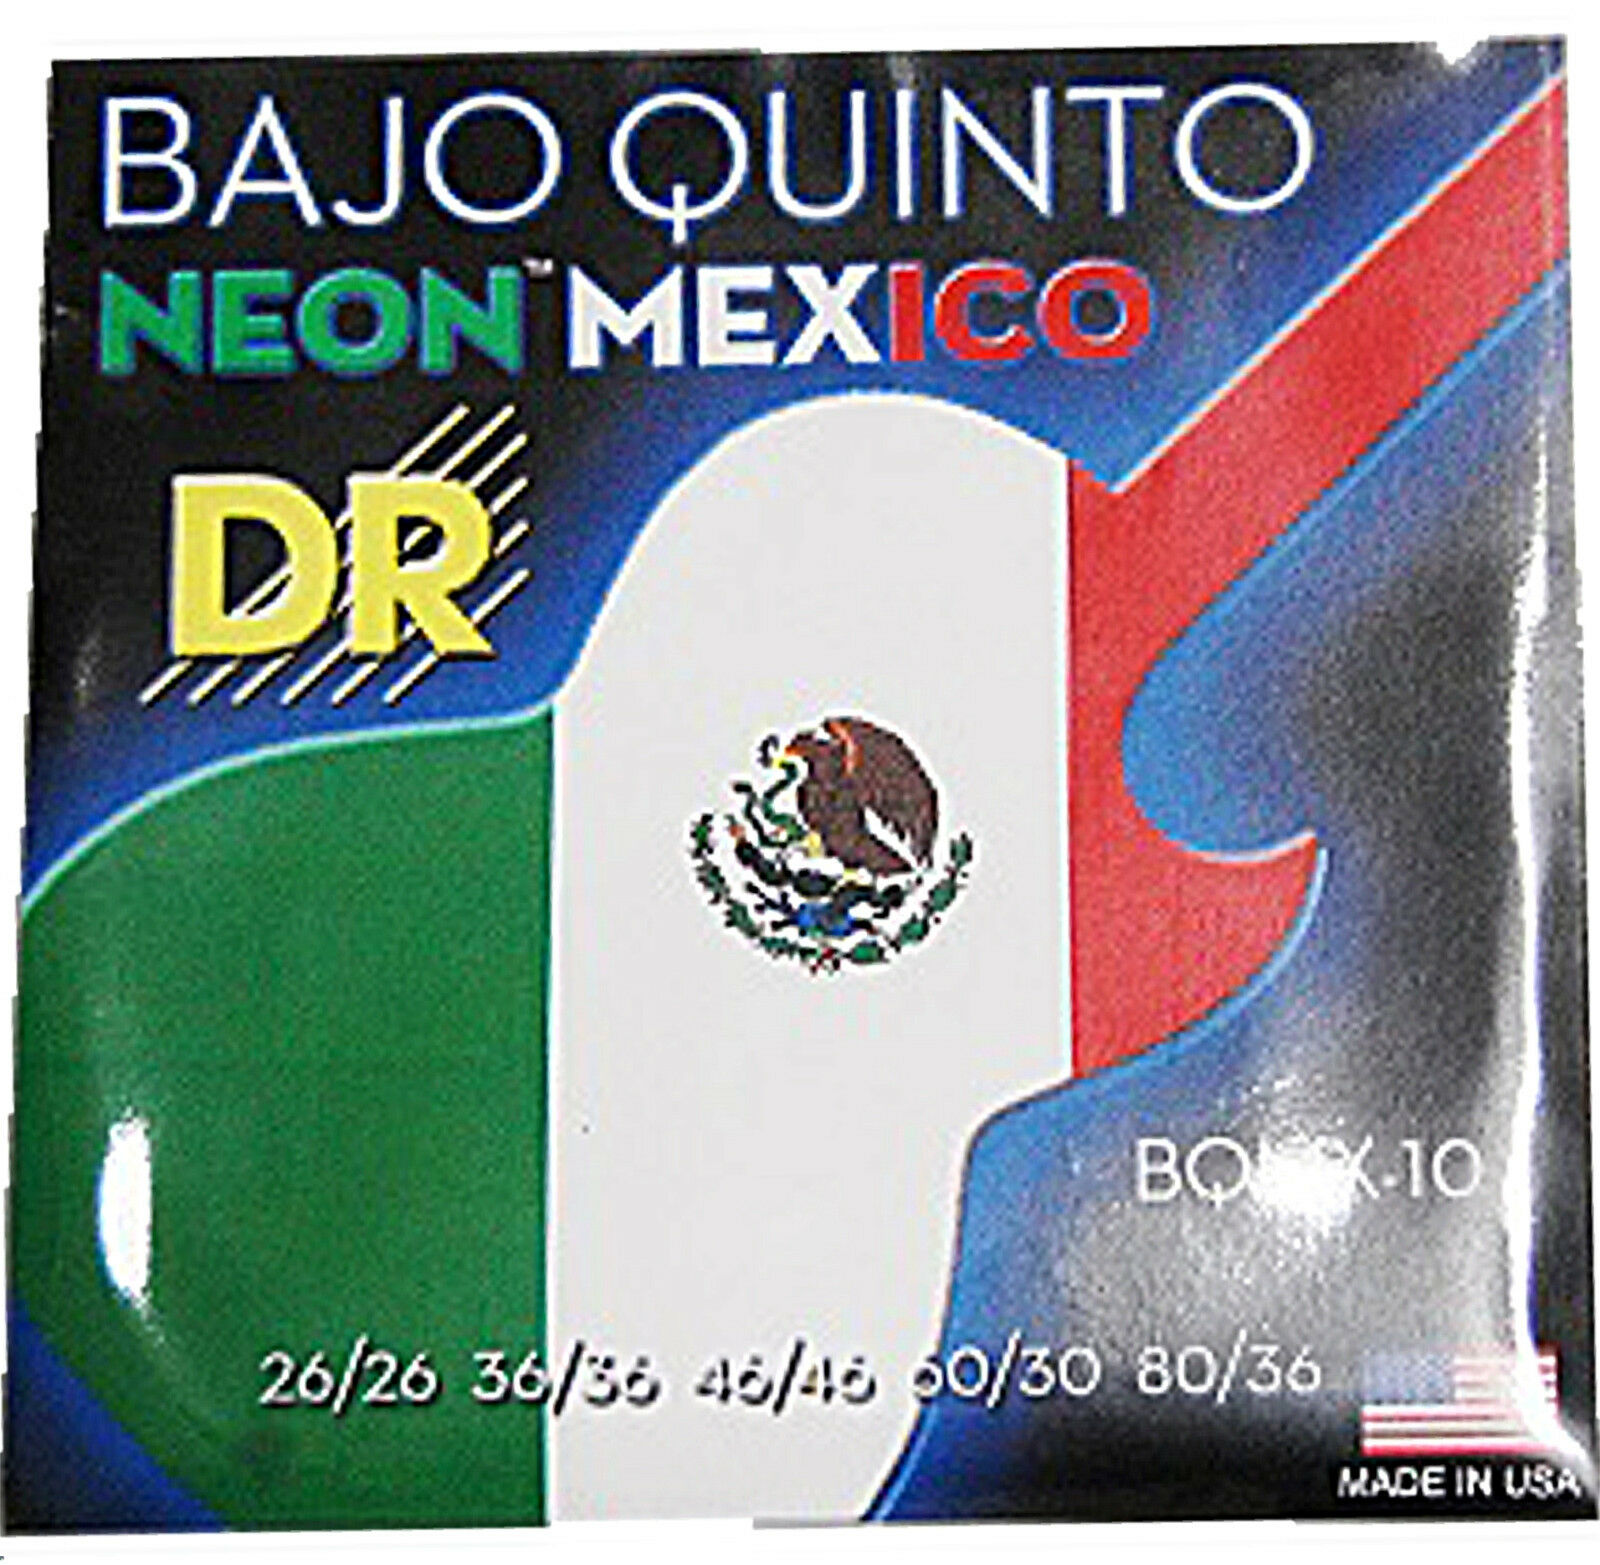 DR Strings BQMX-10 Neon Mexico Bajo Quinto guitar Strings Ne